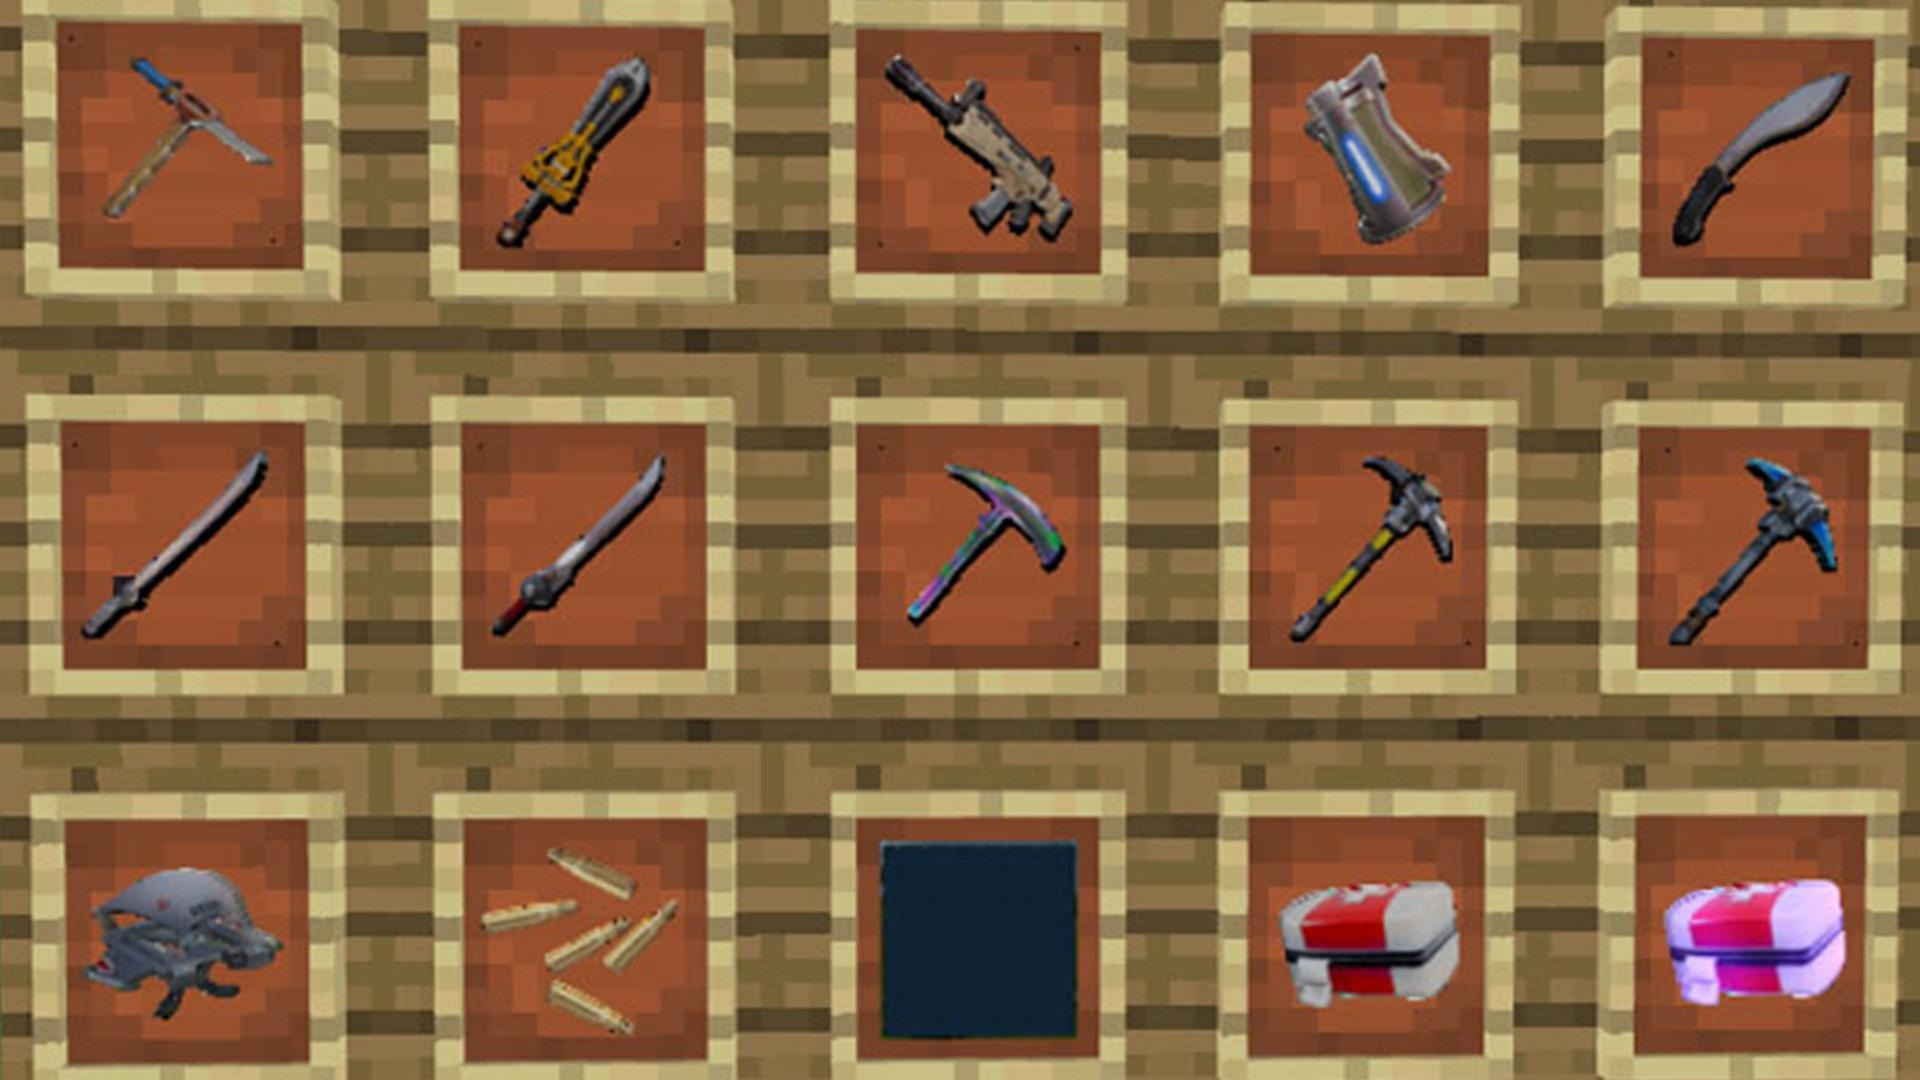 Fortnite Textures Download Fortnite Mod Battle Royale For Minecraft Pe For Android Apk Download